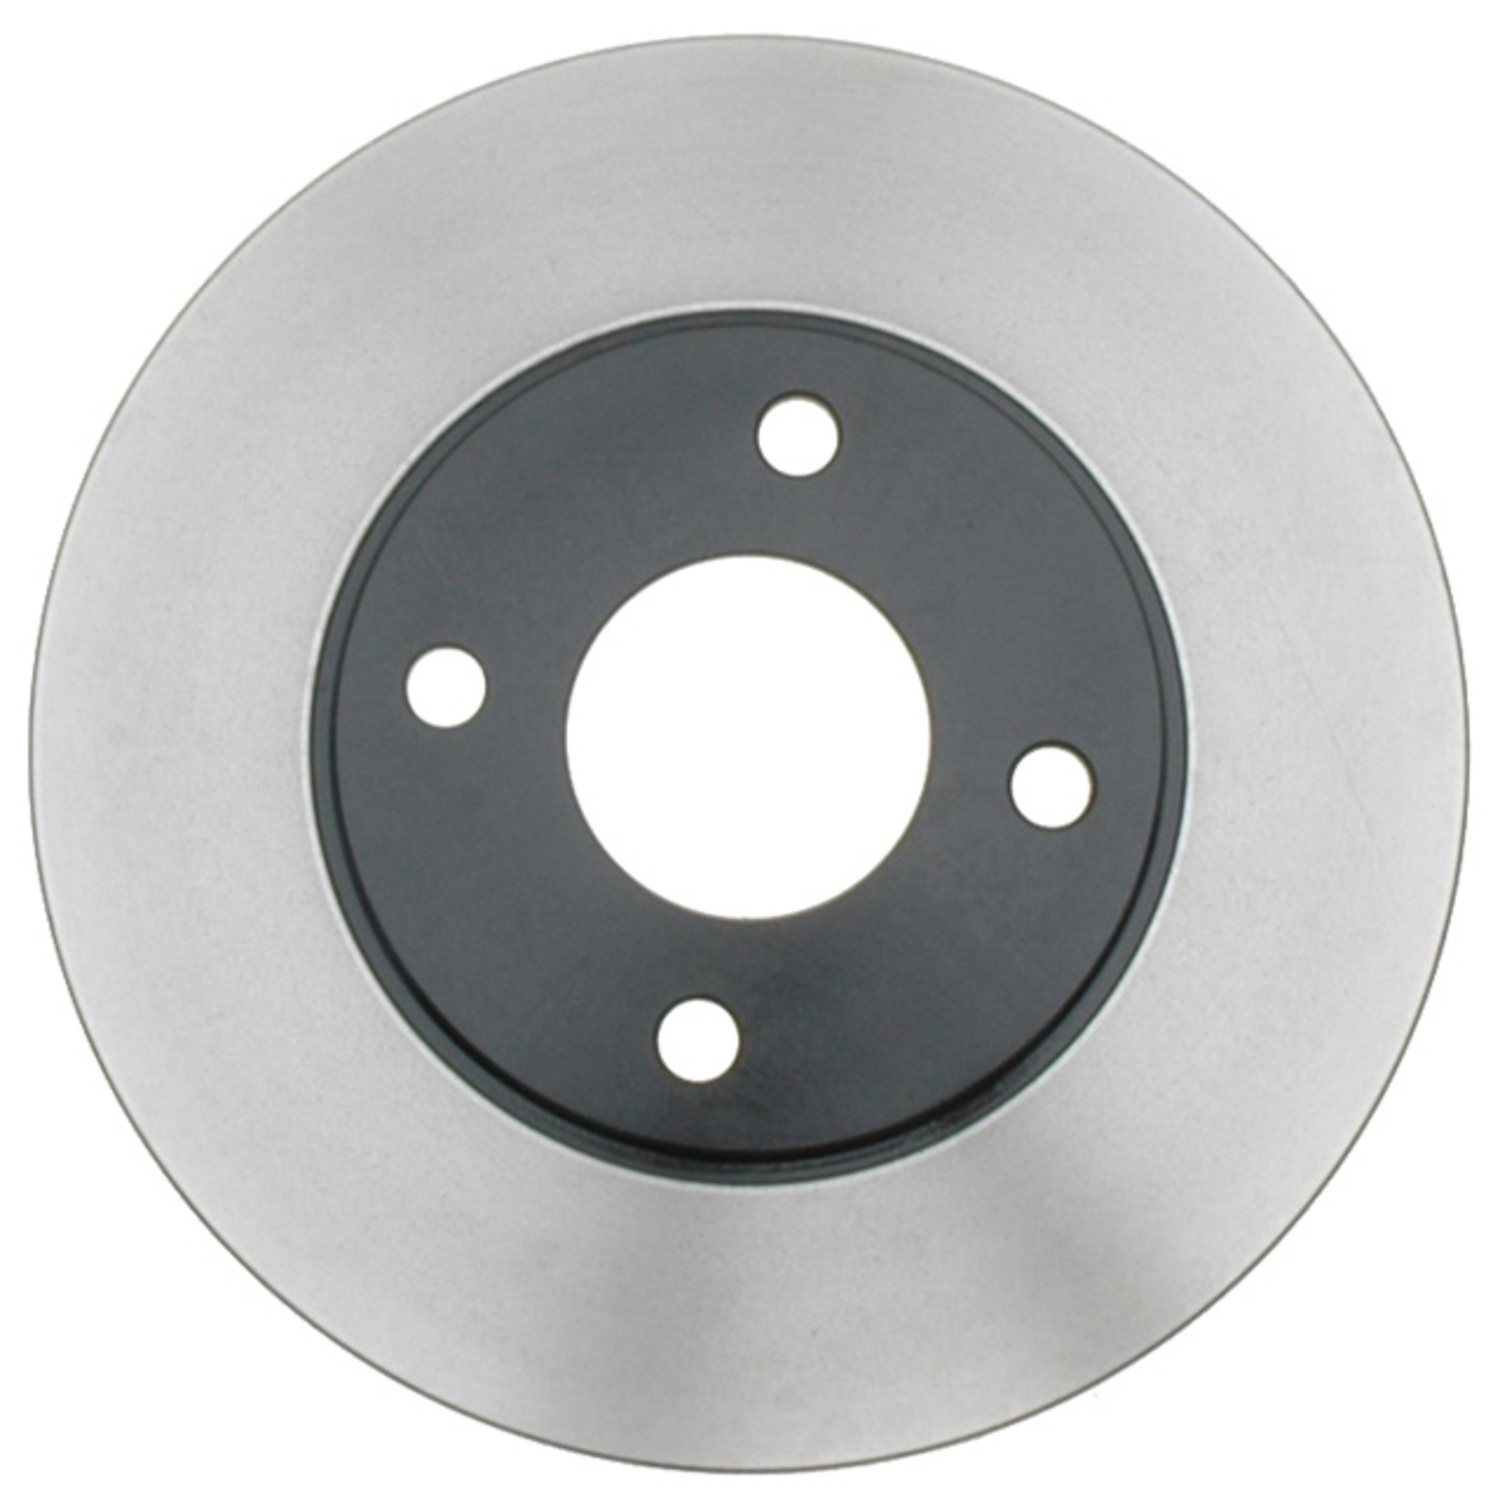 ACDELCO ADVANTAGE - Coated Disc Brake Rotor (Front) - DCD 18A680AC